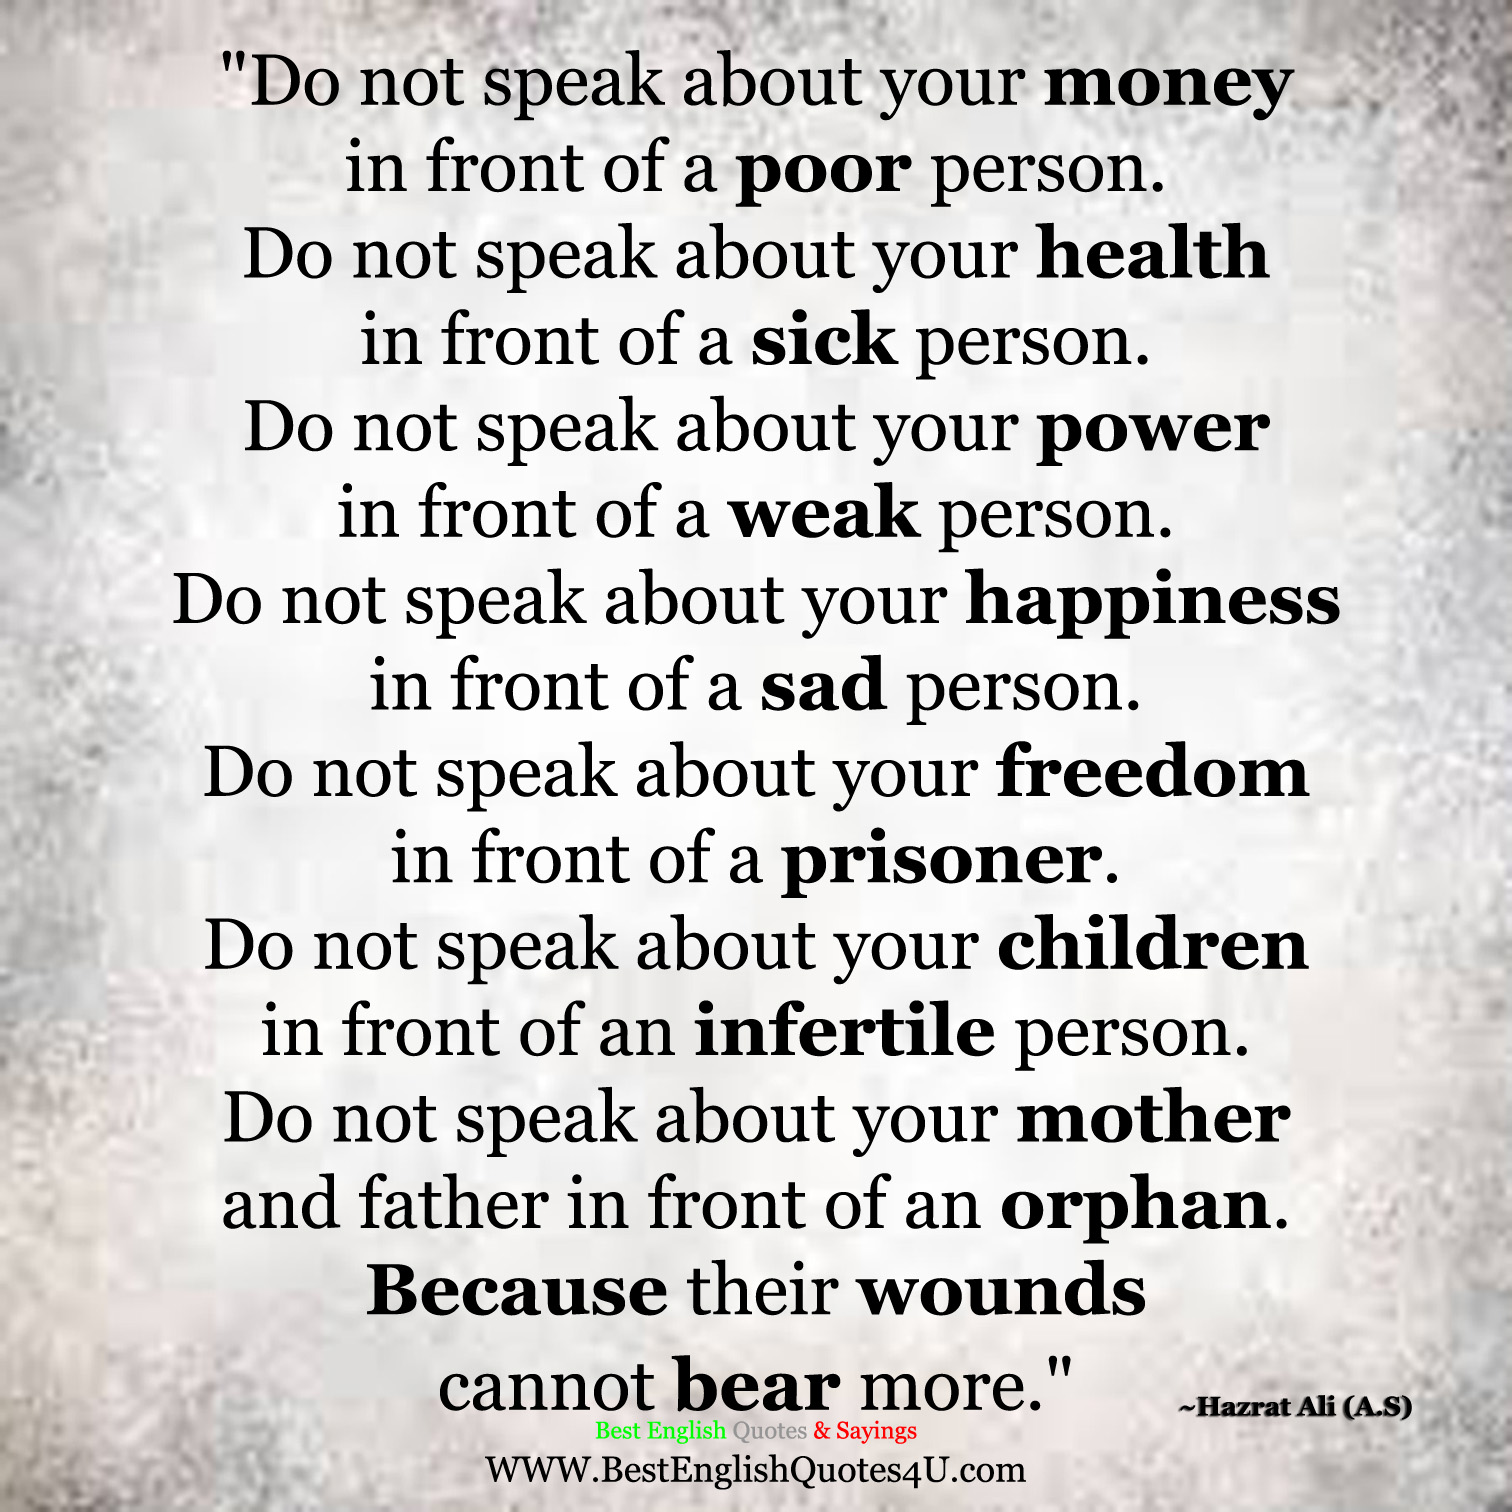 Do Not Speak About Your Money In Front Of A Poor Person